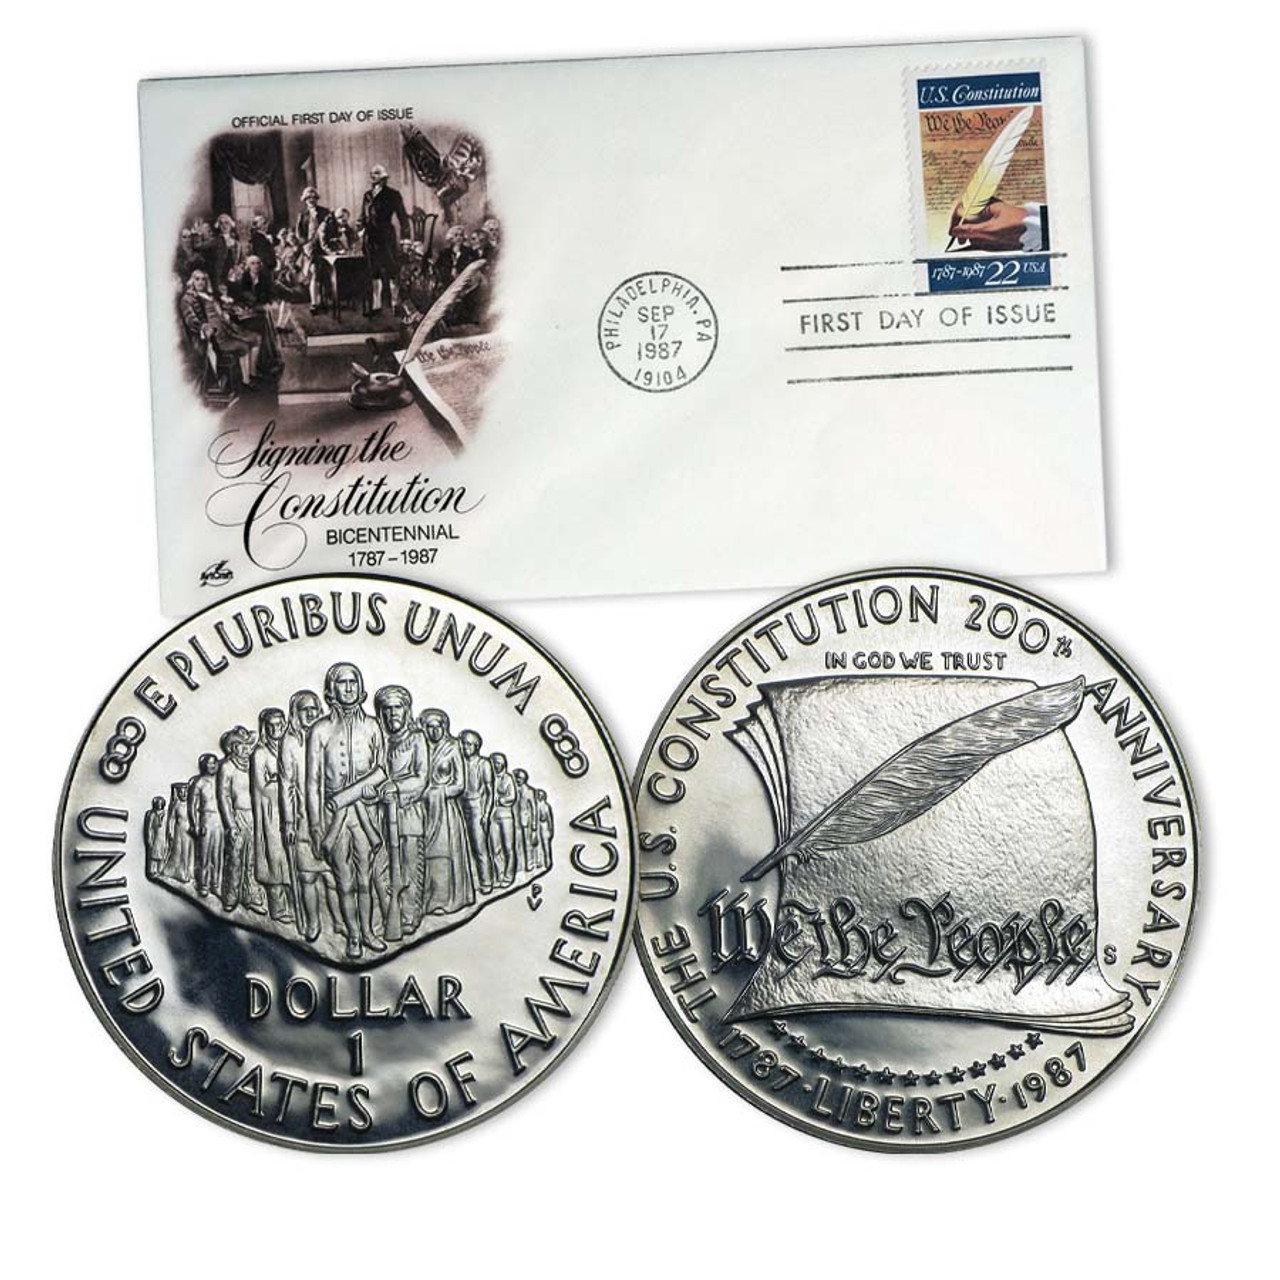 1987 Constitution Silver Dollar Proof with Free First Day Cover Image 1